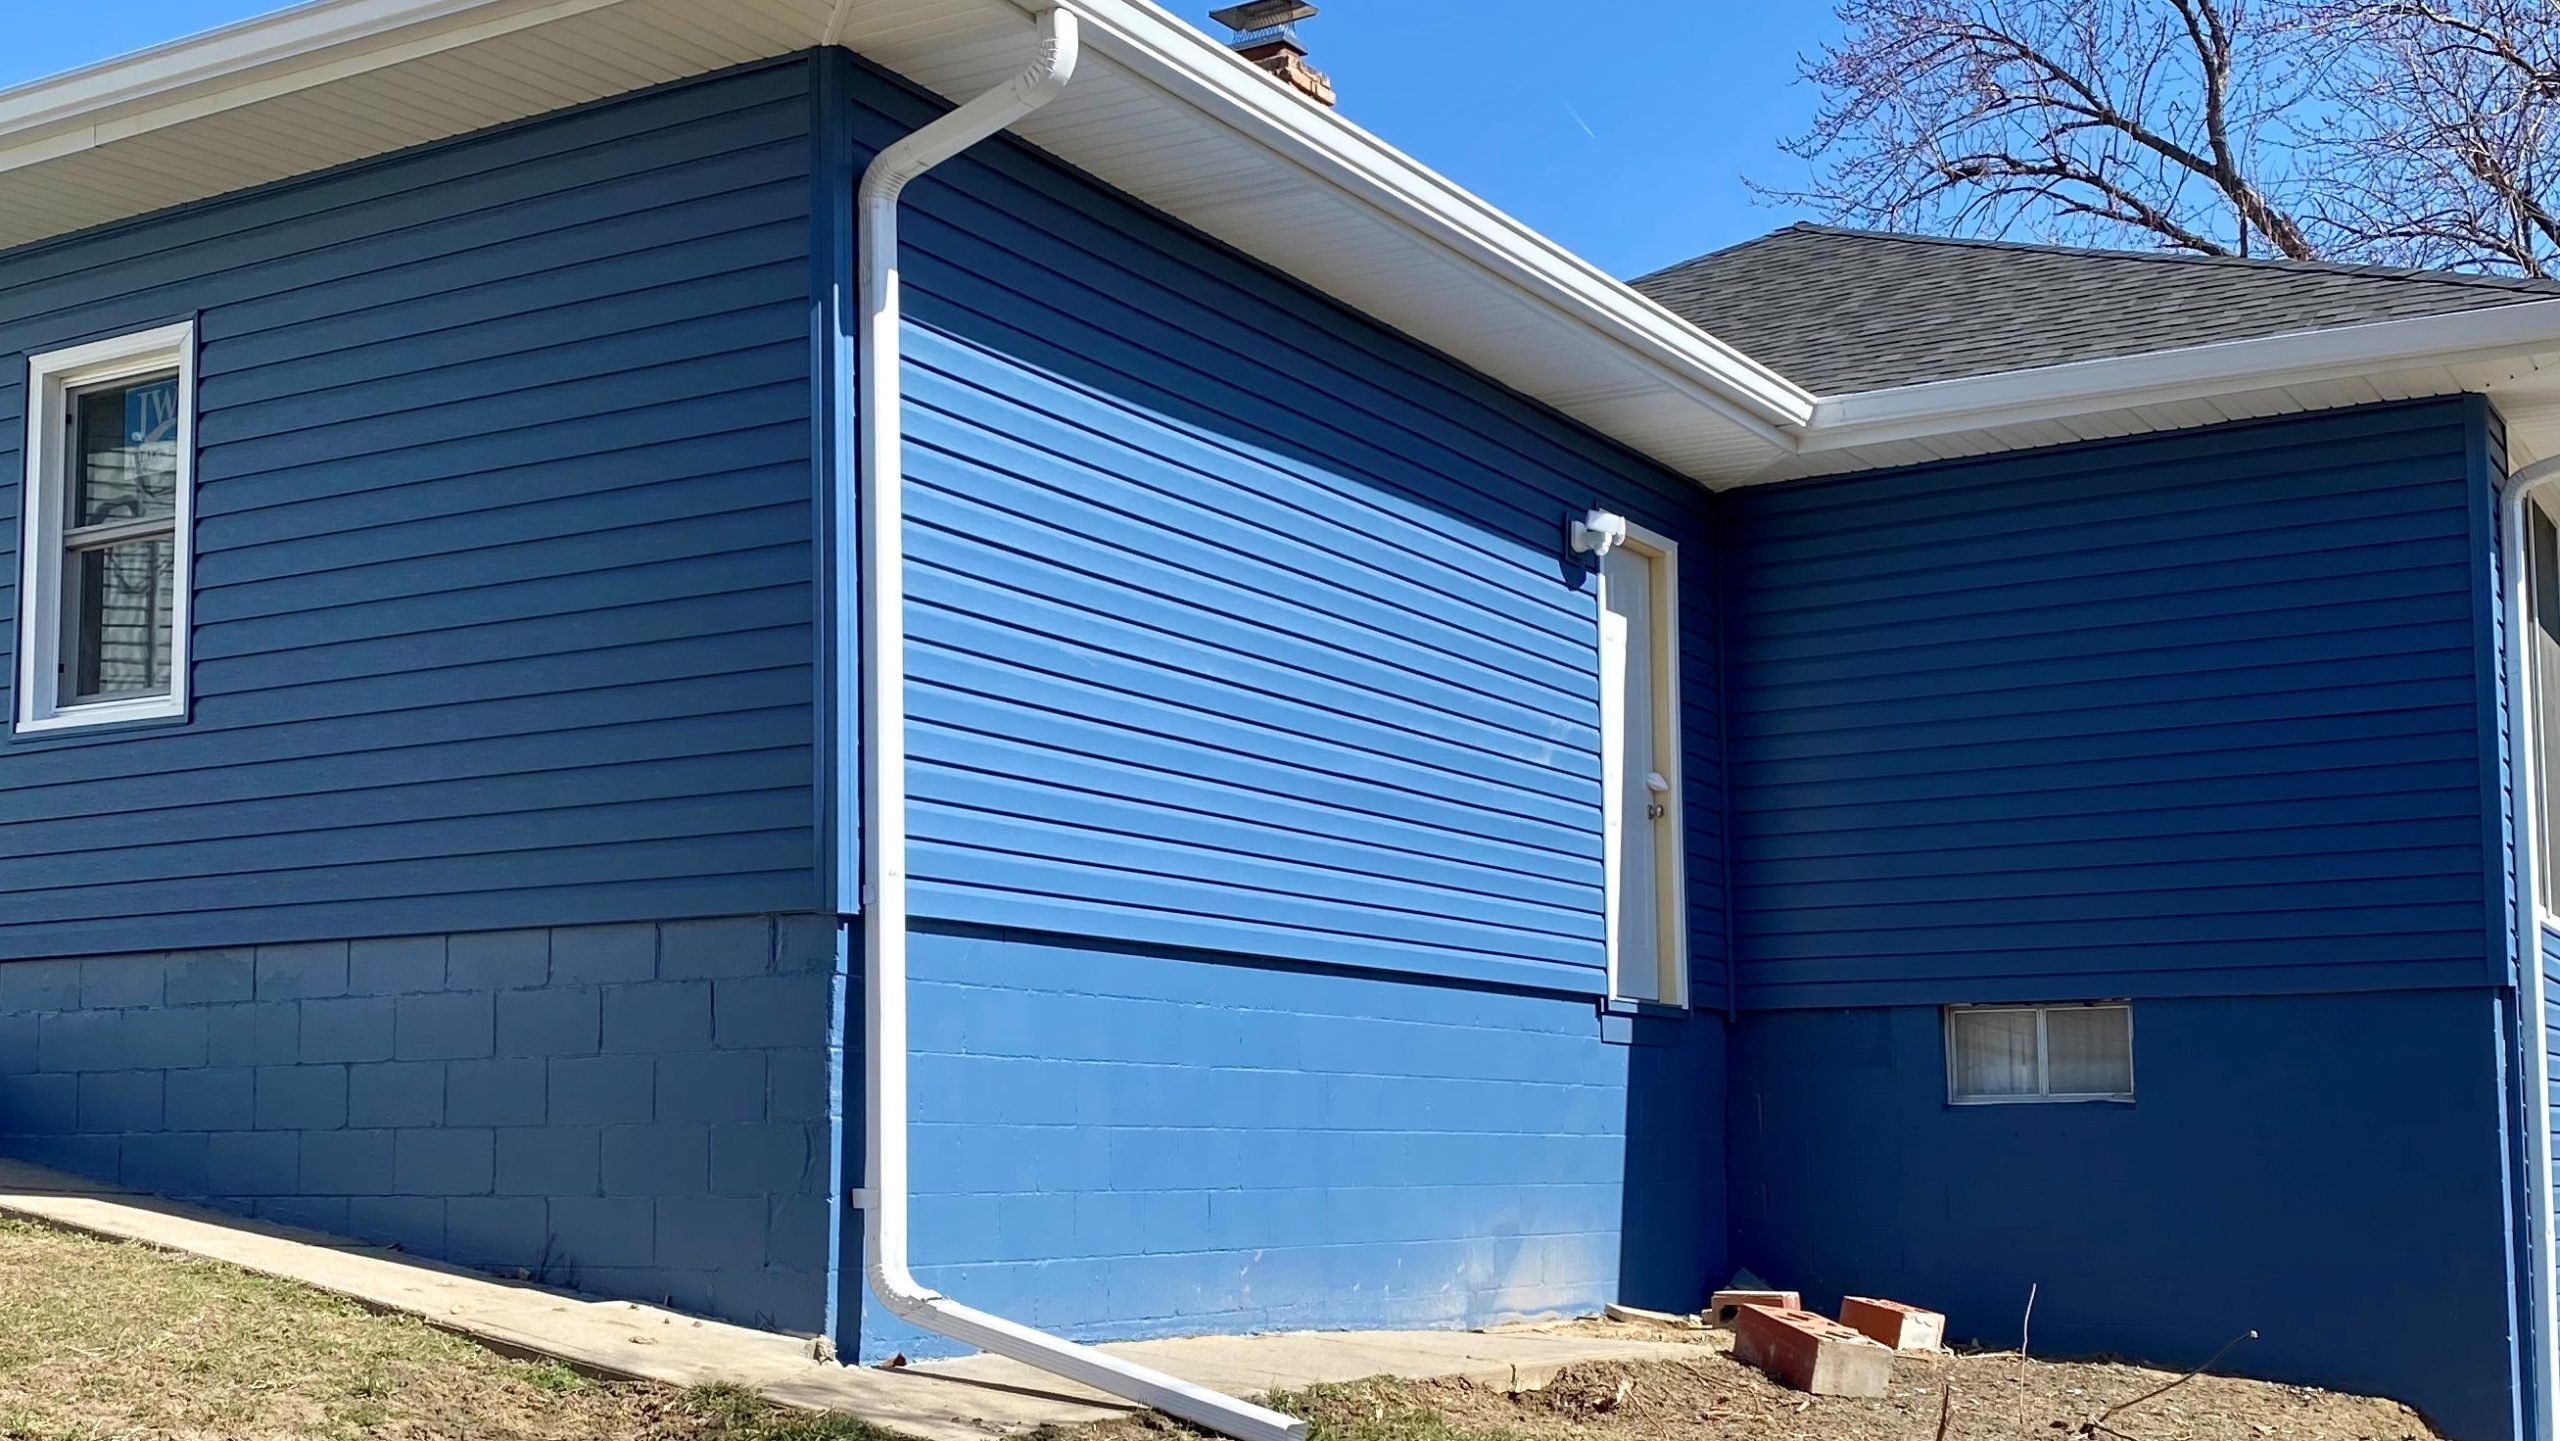 exterior painting on sides of house